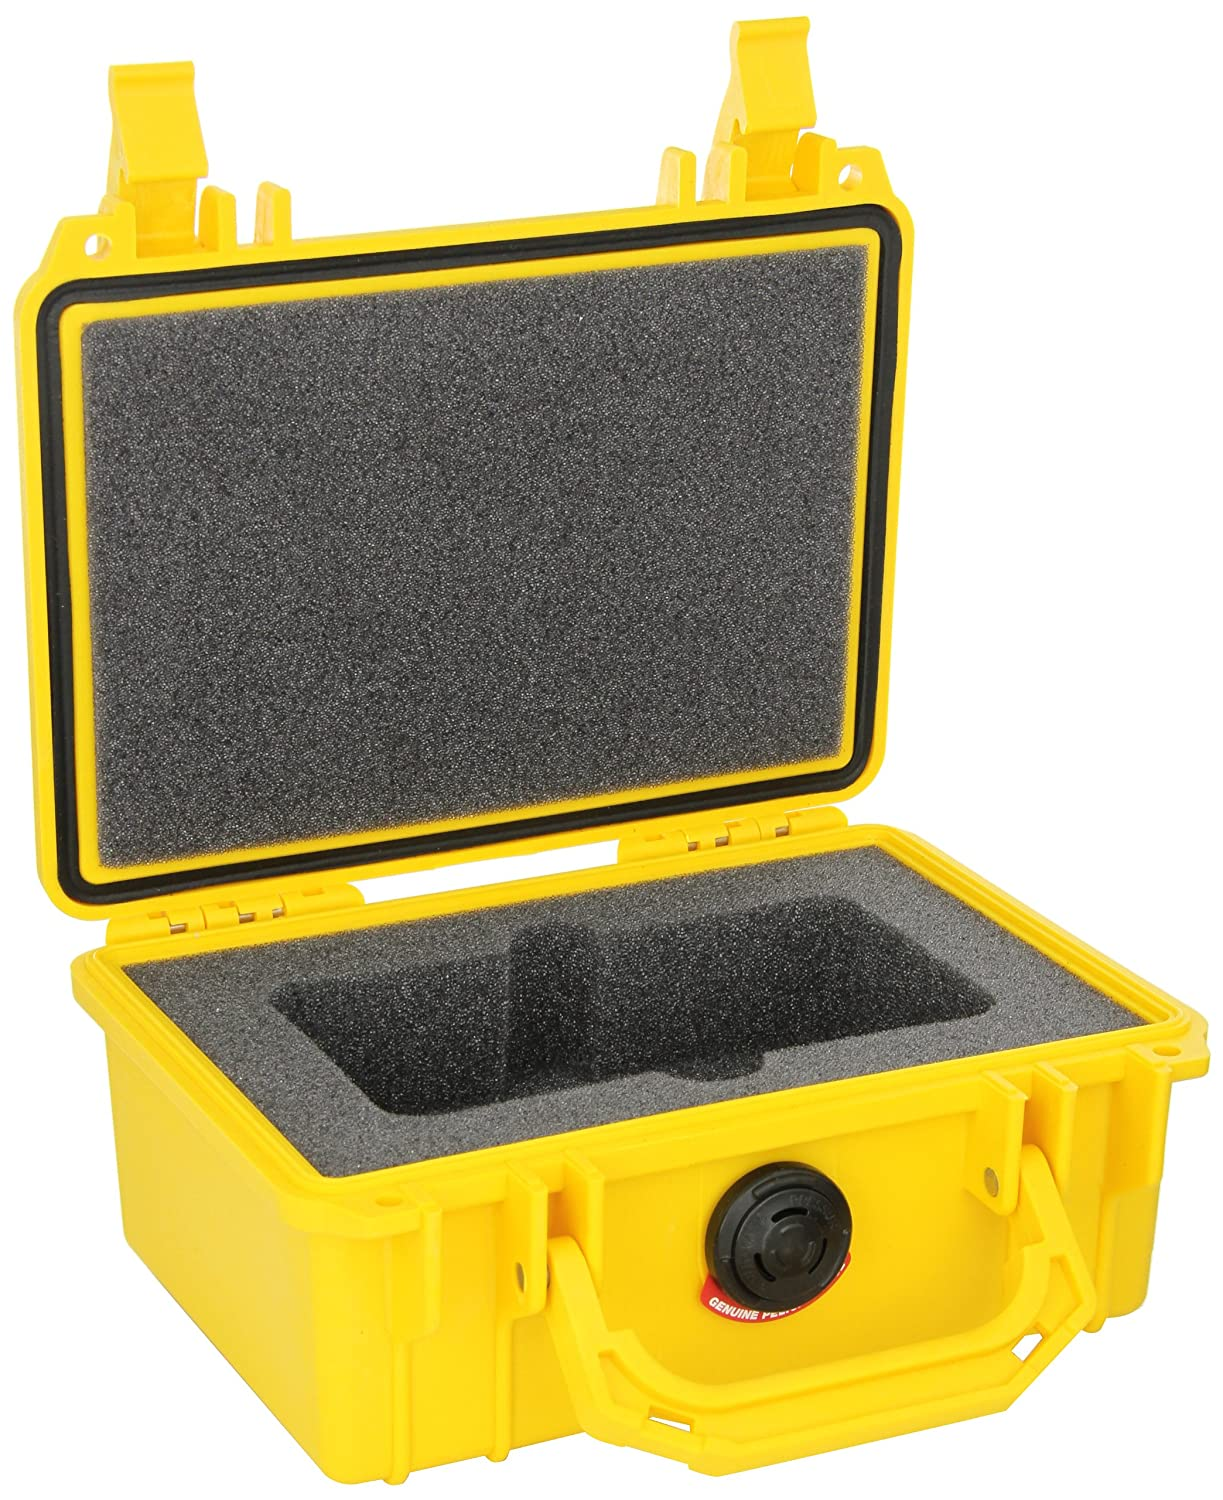 Mazur Instruments PRM-HC-YL Pelican PRM Hard Field Case, 7-1/4-Inch Length x 4-3/4-Inch Width, Yellow